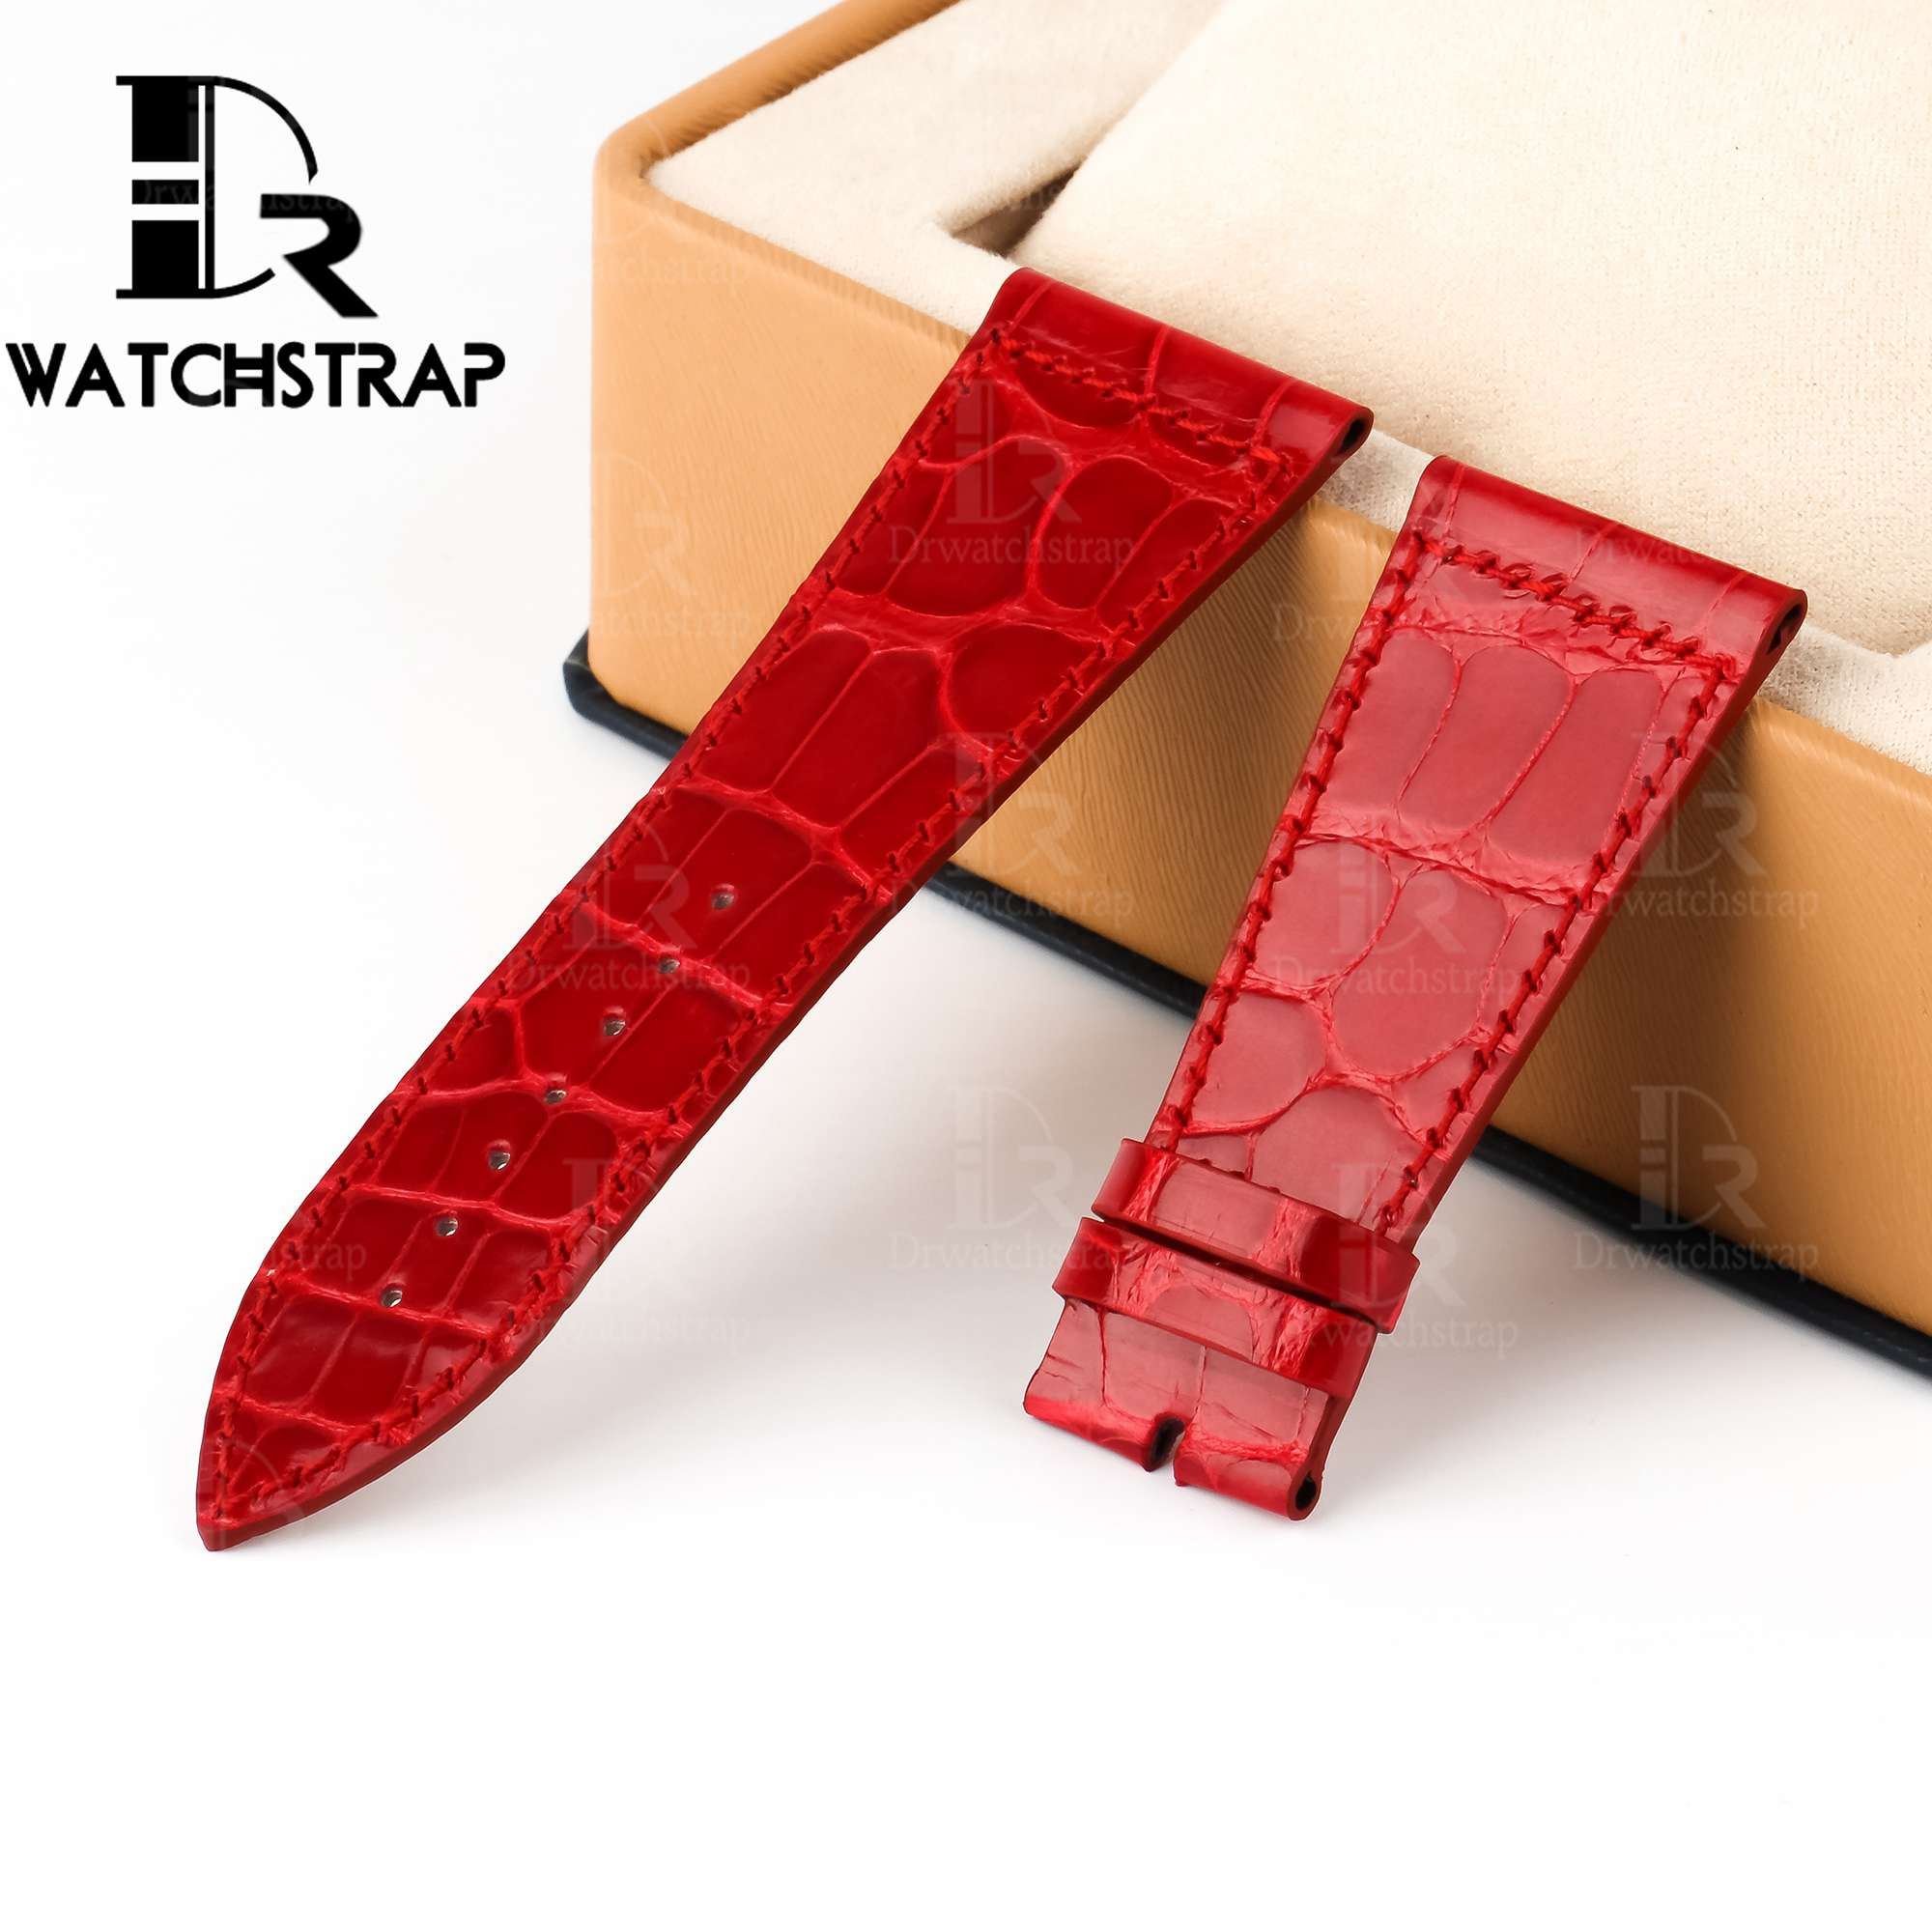 Replacement Red Leather Watch Band Strap Fit For Franck Muller Master Square 6000K ST DT